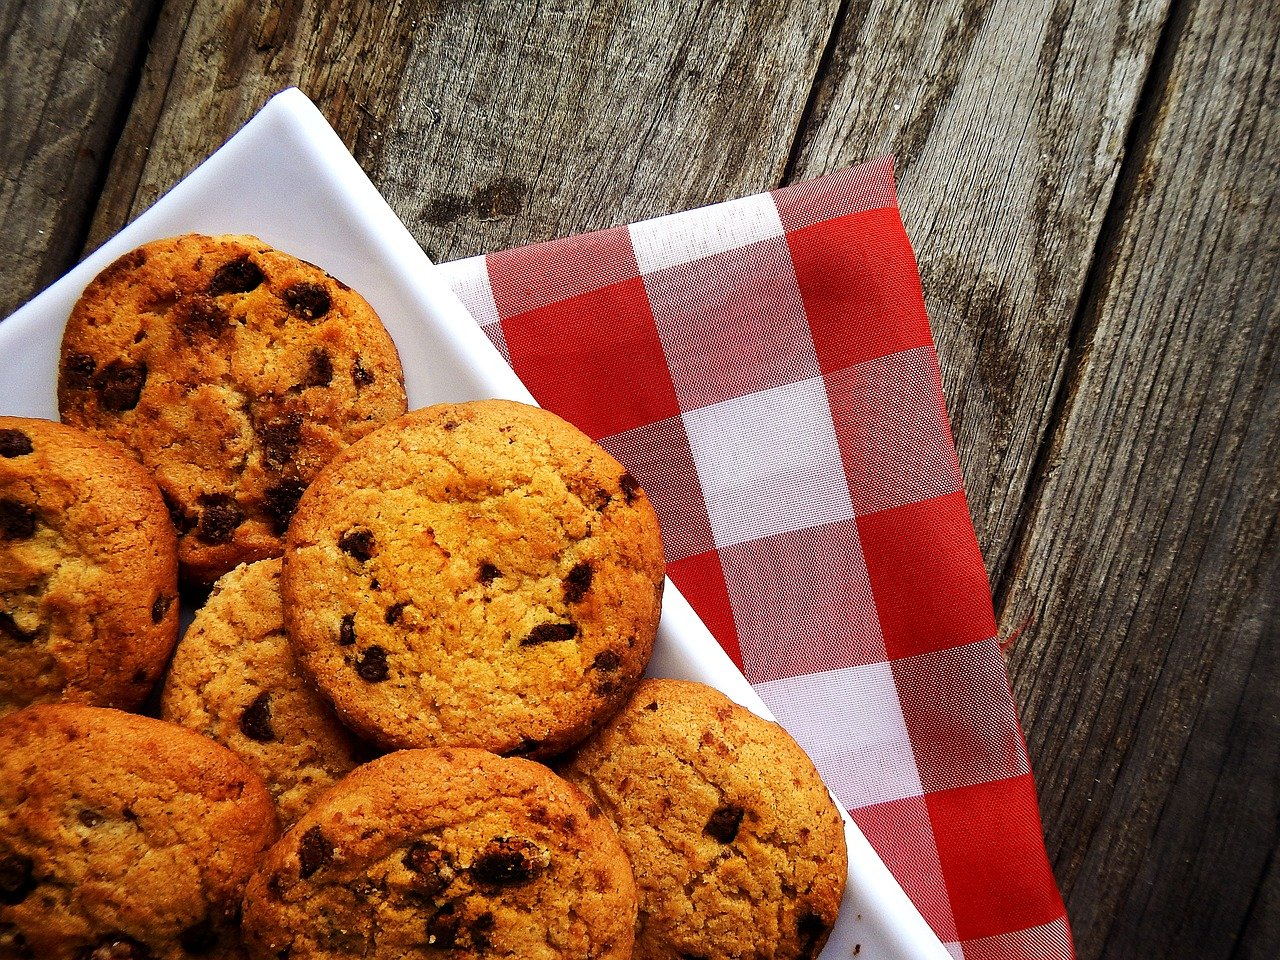 A tray full full of chocolate-chips biscuits on a kitchen table. I Photo: Pixabay.